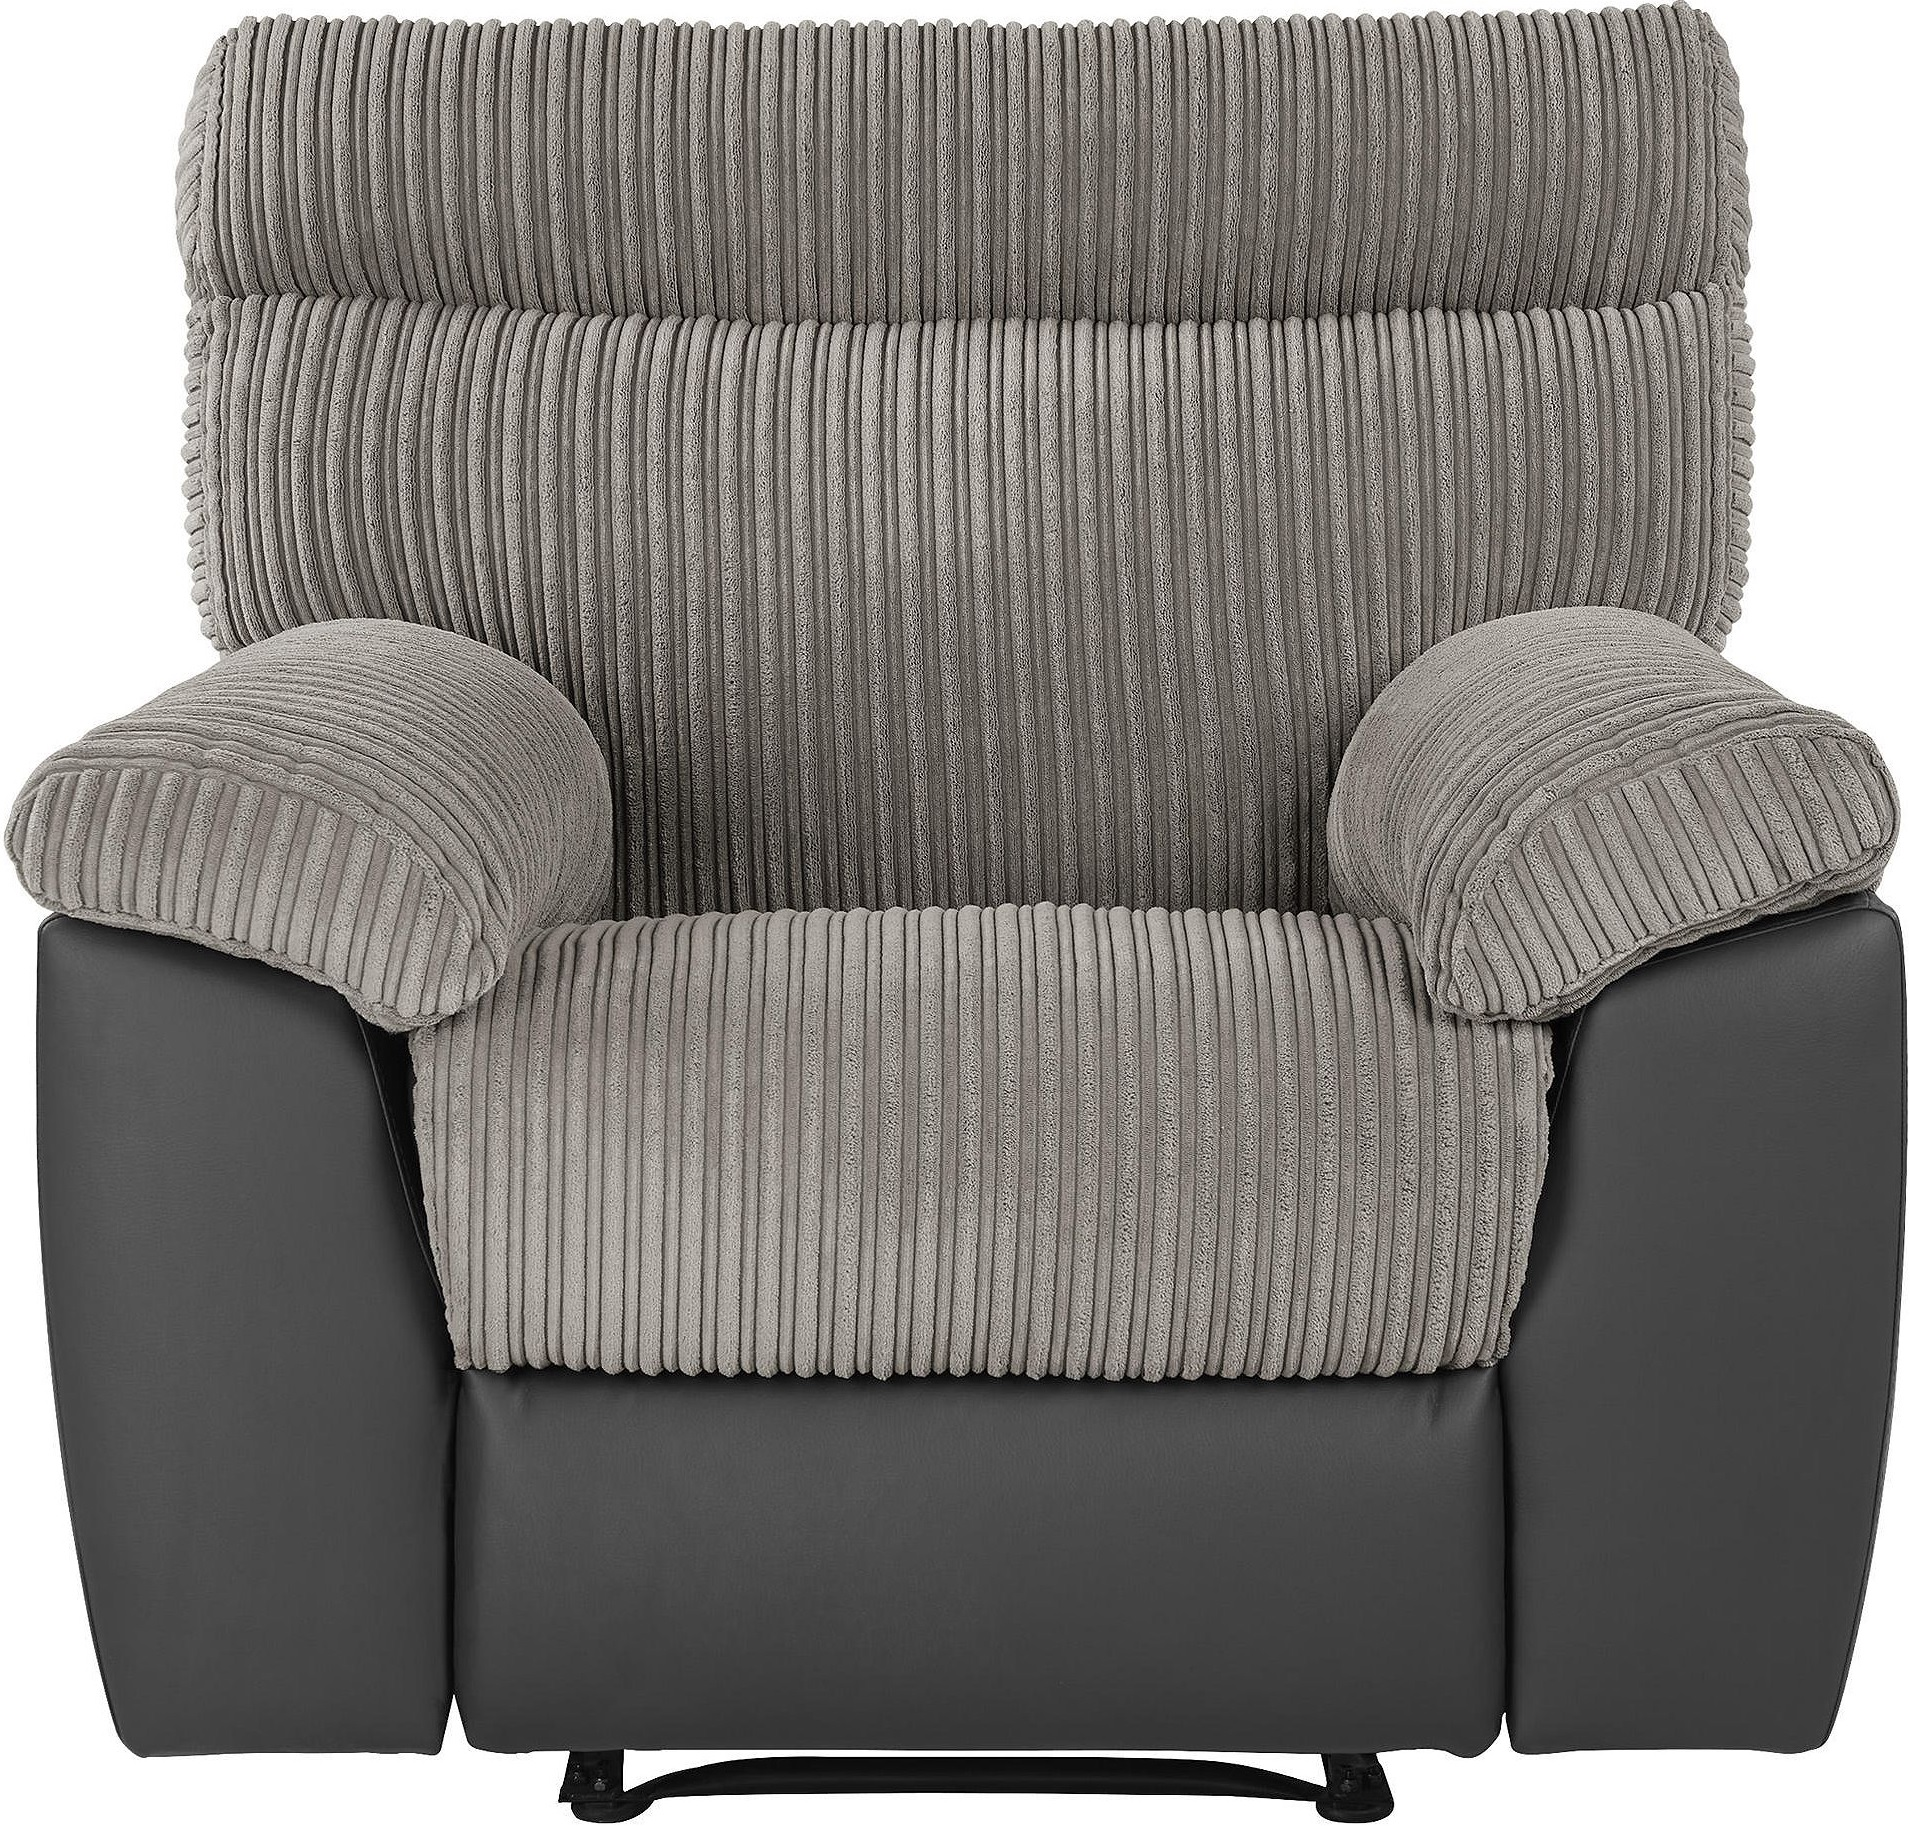 grey leather recliner chair uk stokke high sale new dorset faux and jumbo cord arm